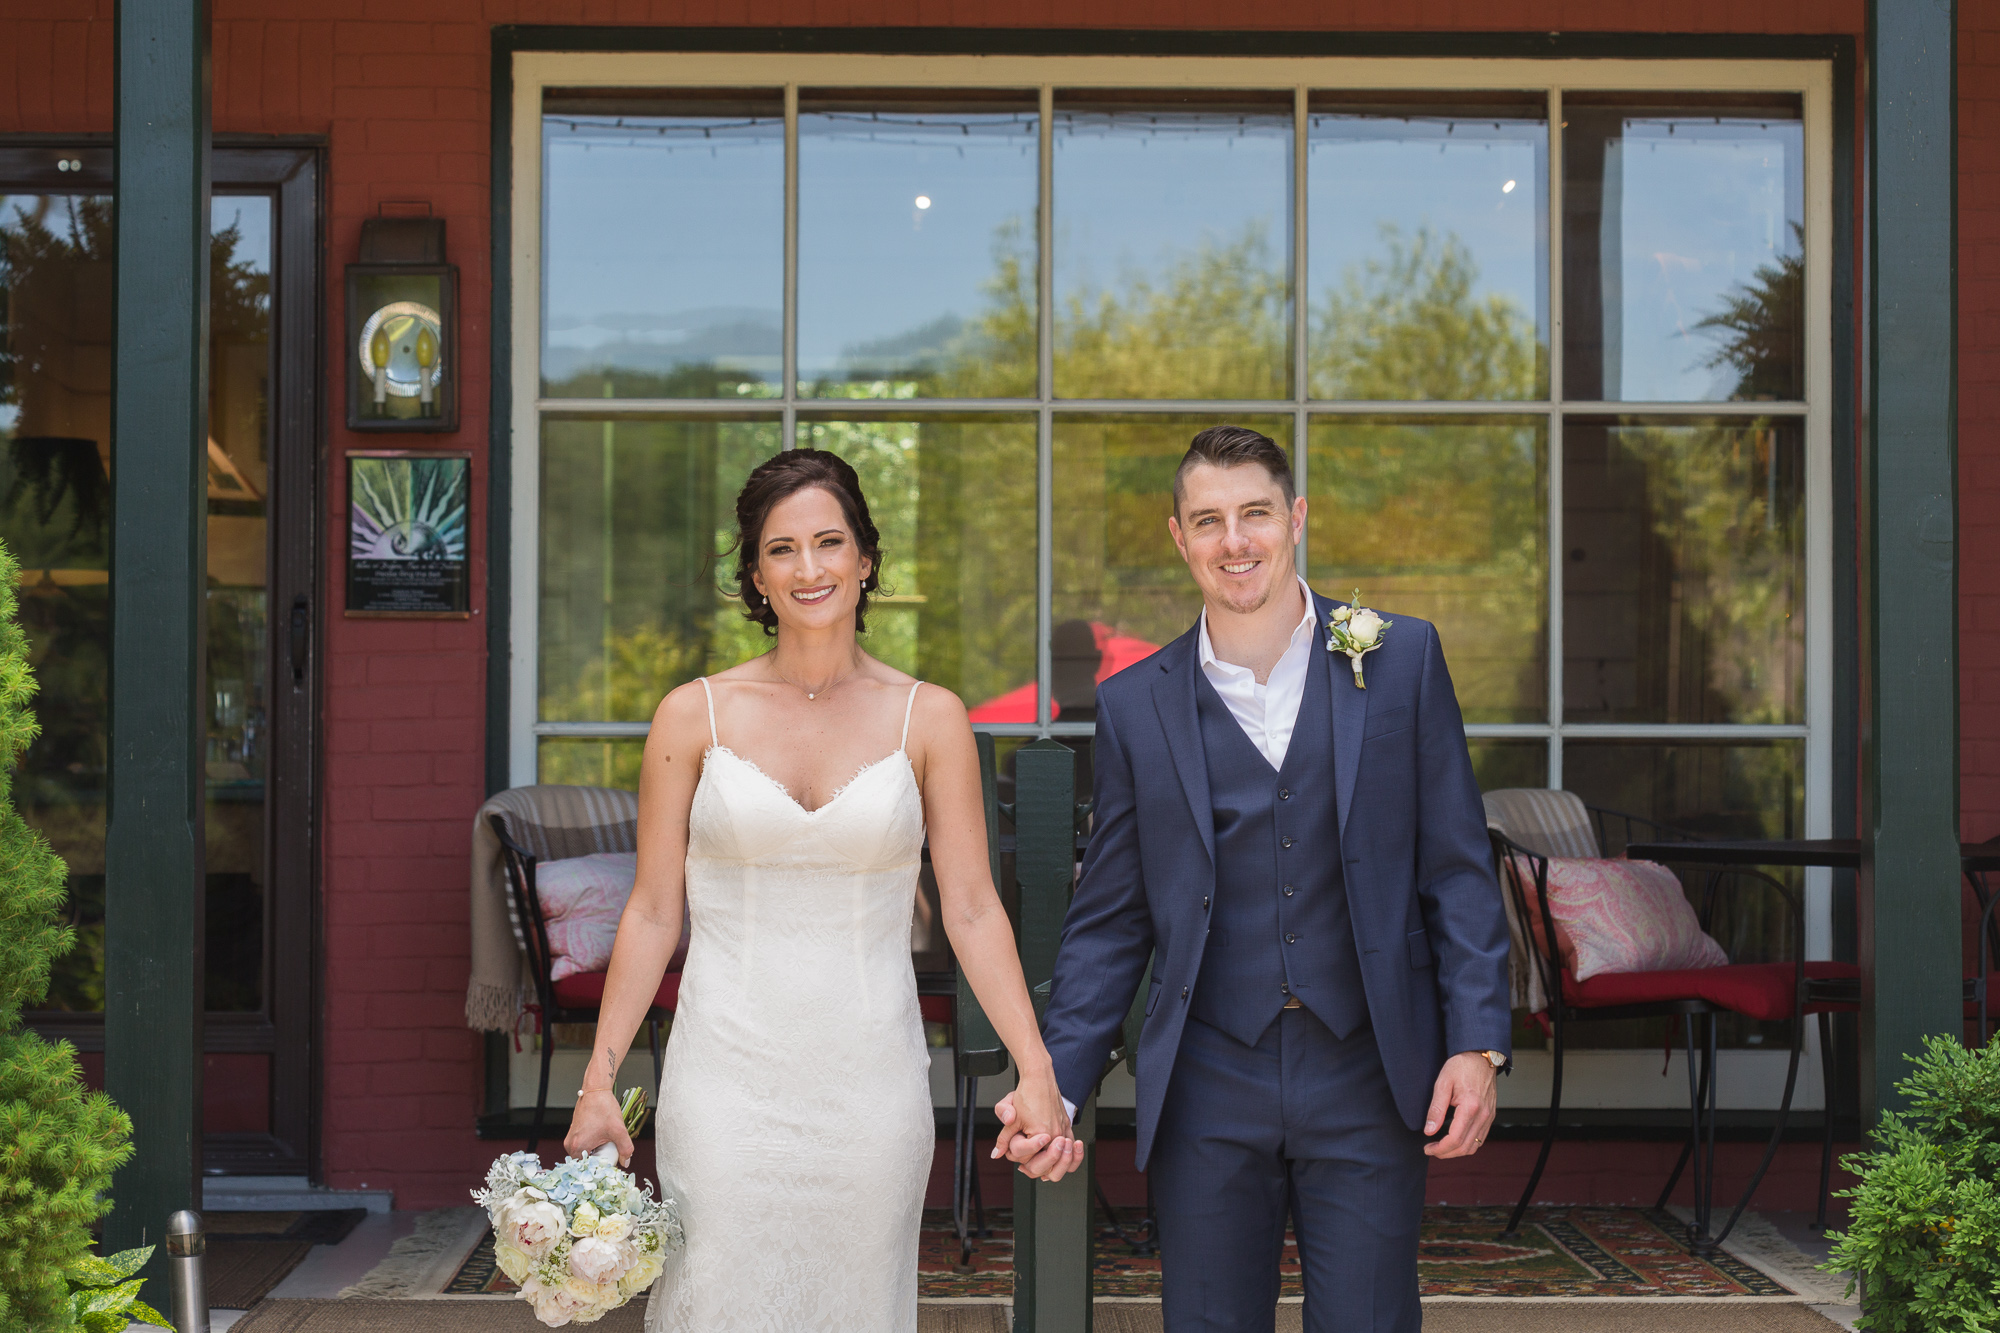 Elegant micro wedding at Bridgeton House on the Delaware, Bucks County, PA